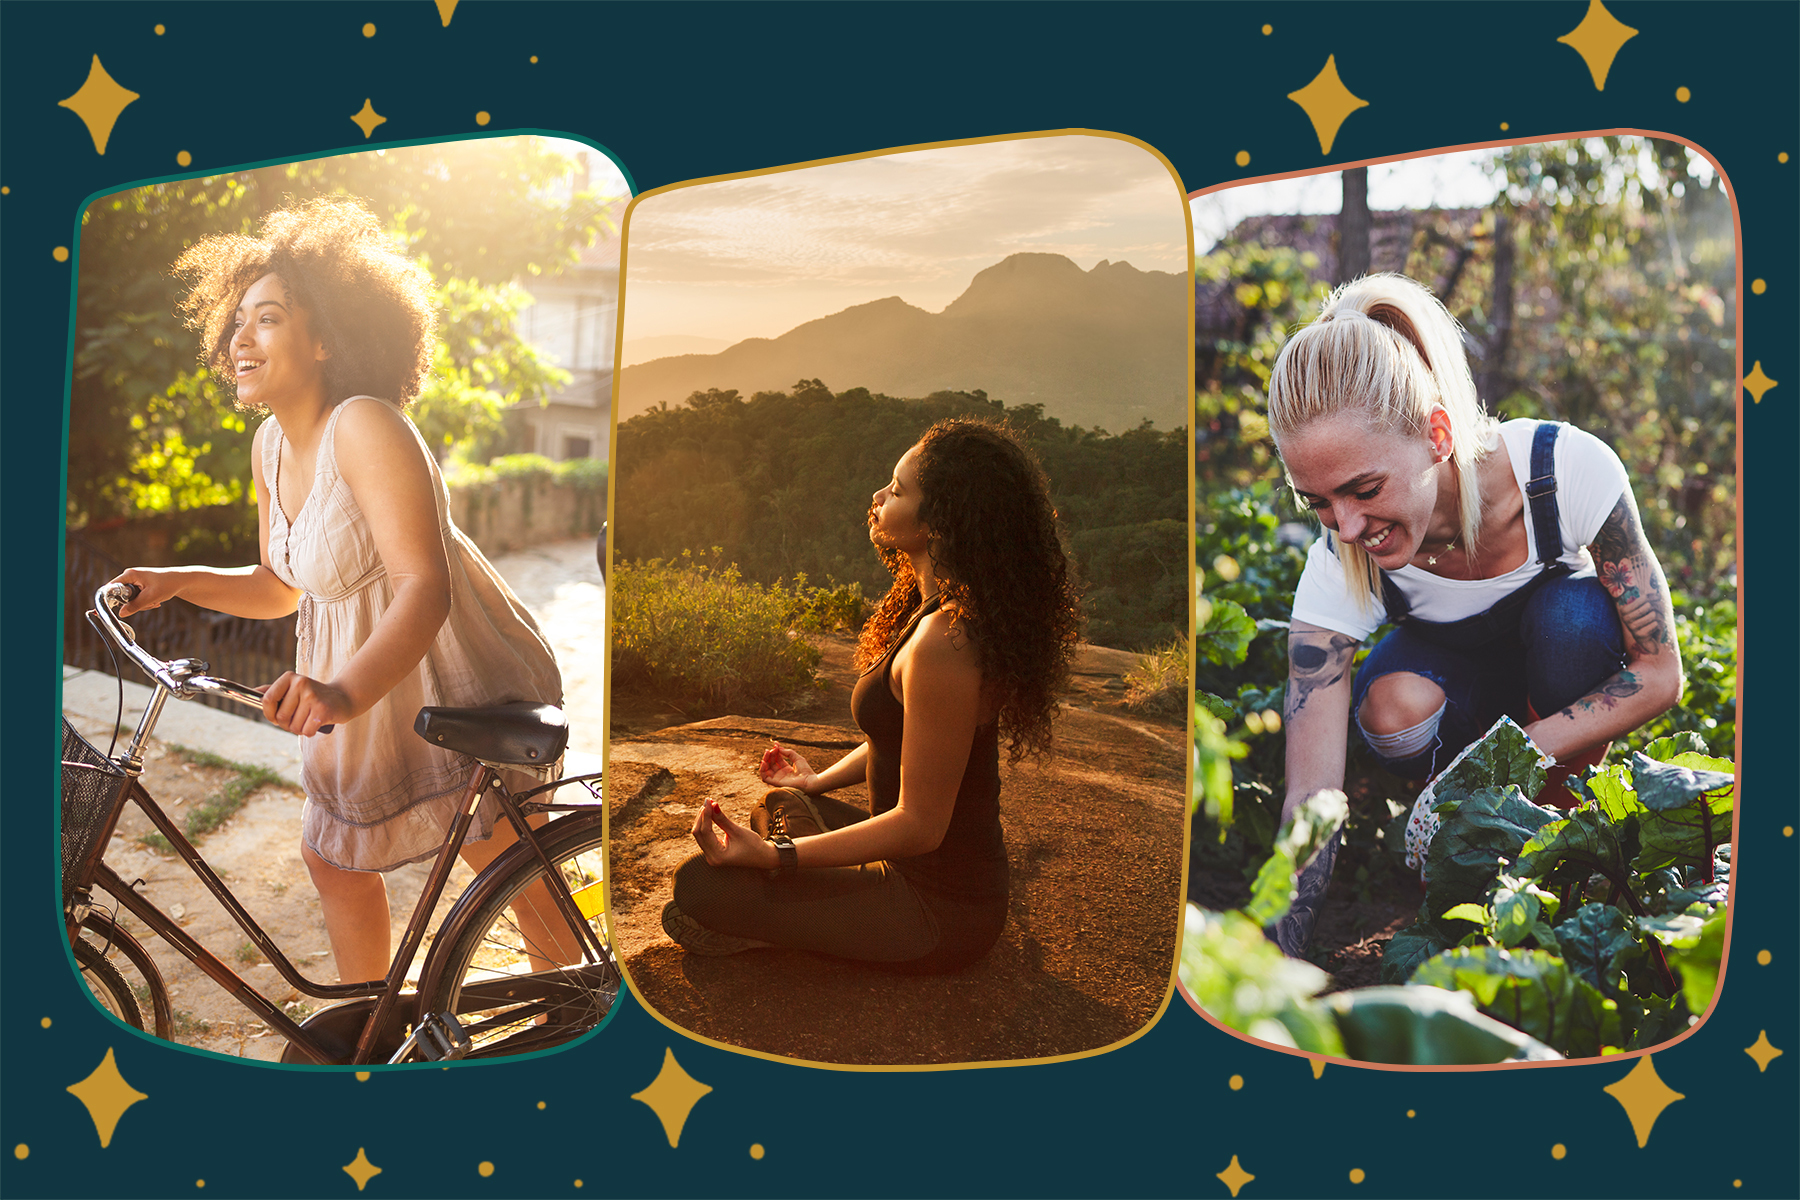 The Most Enjoyable Summer Activity You'll Do All Season, According to Your Zodiac Sign